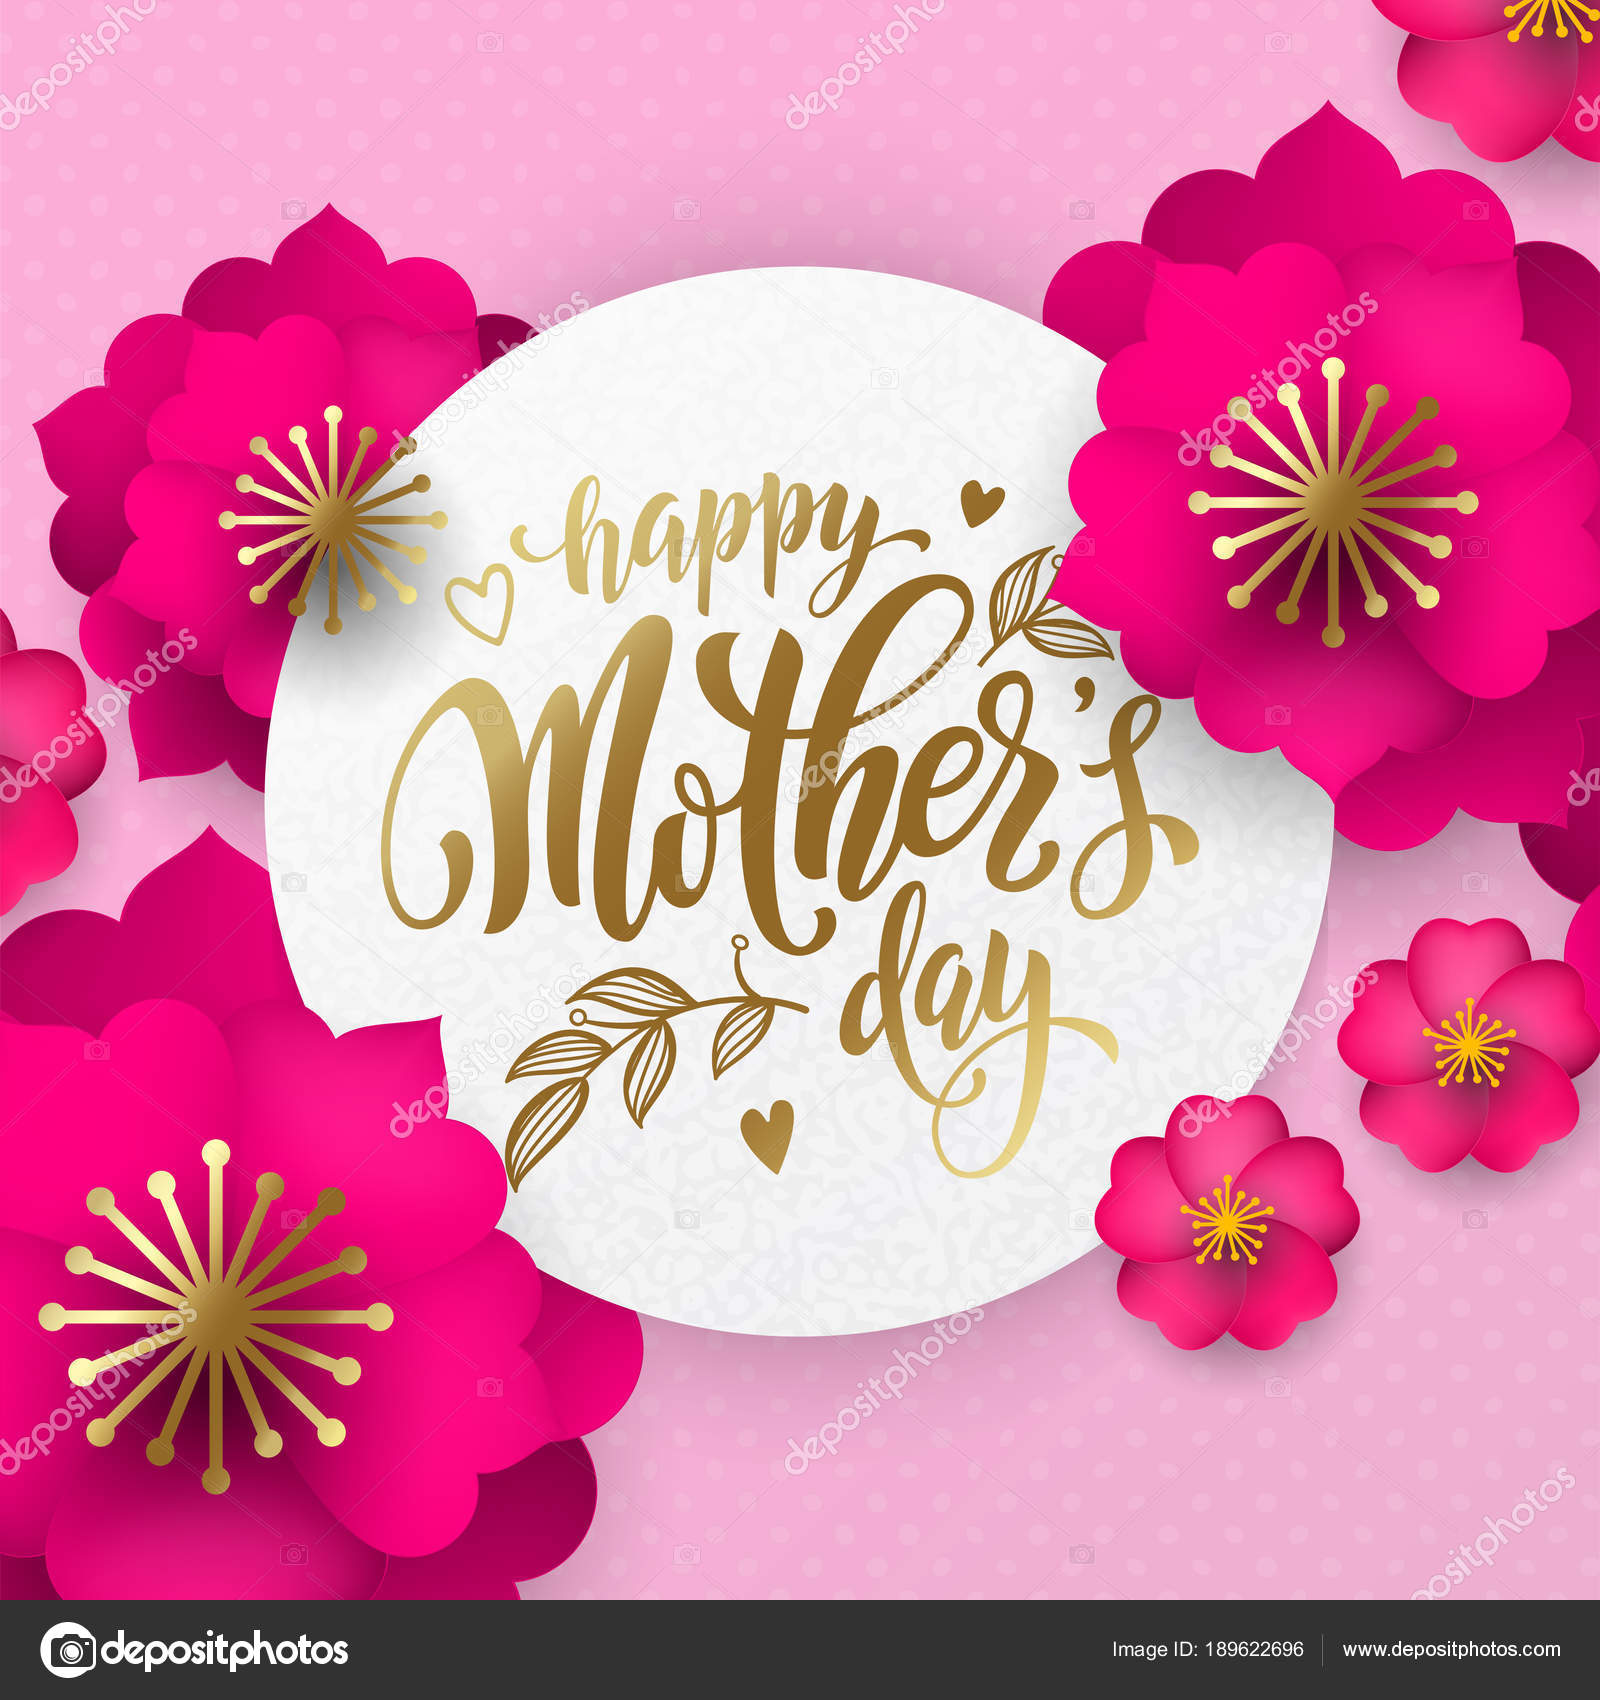 Mothers day greeting card of red flowers pattern and gold text mothers day greeting card of red flowers pattern and gold text vector floral pink and m4hsunfo